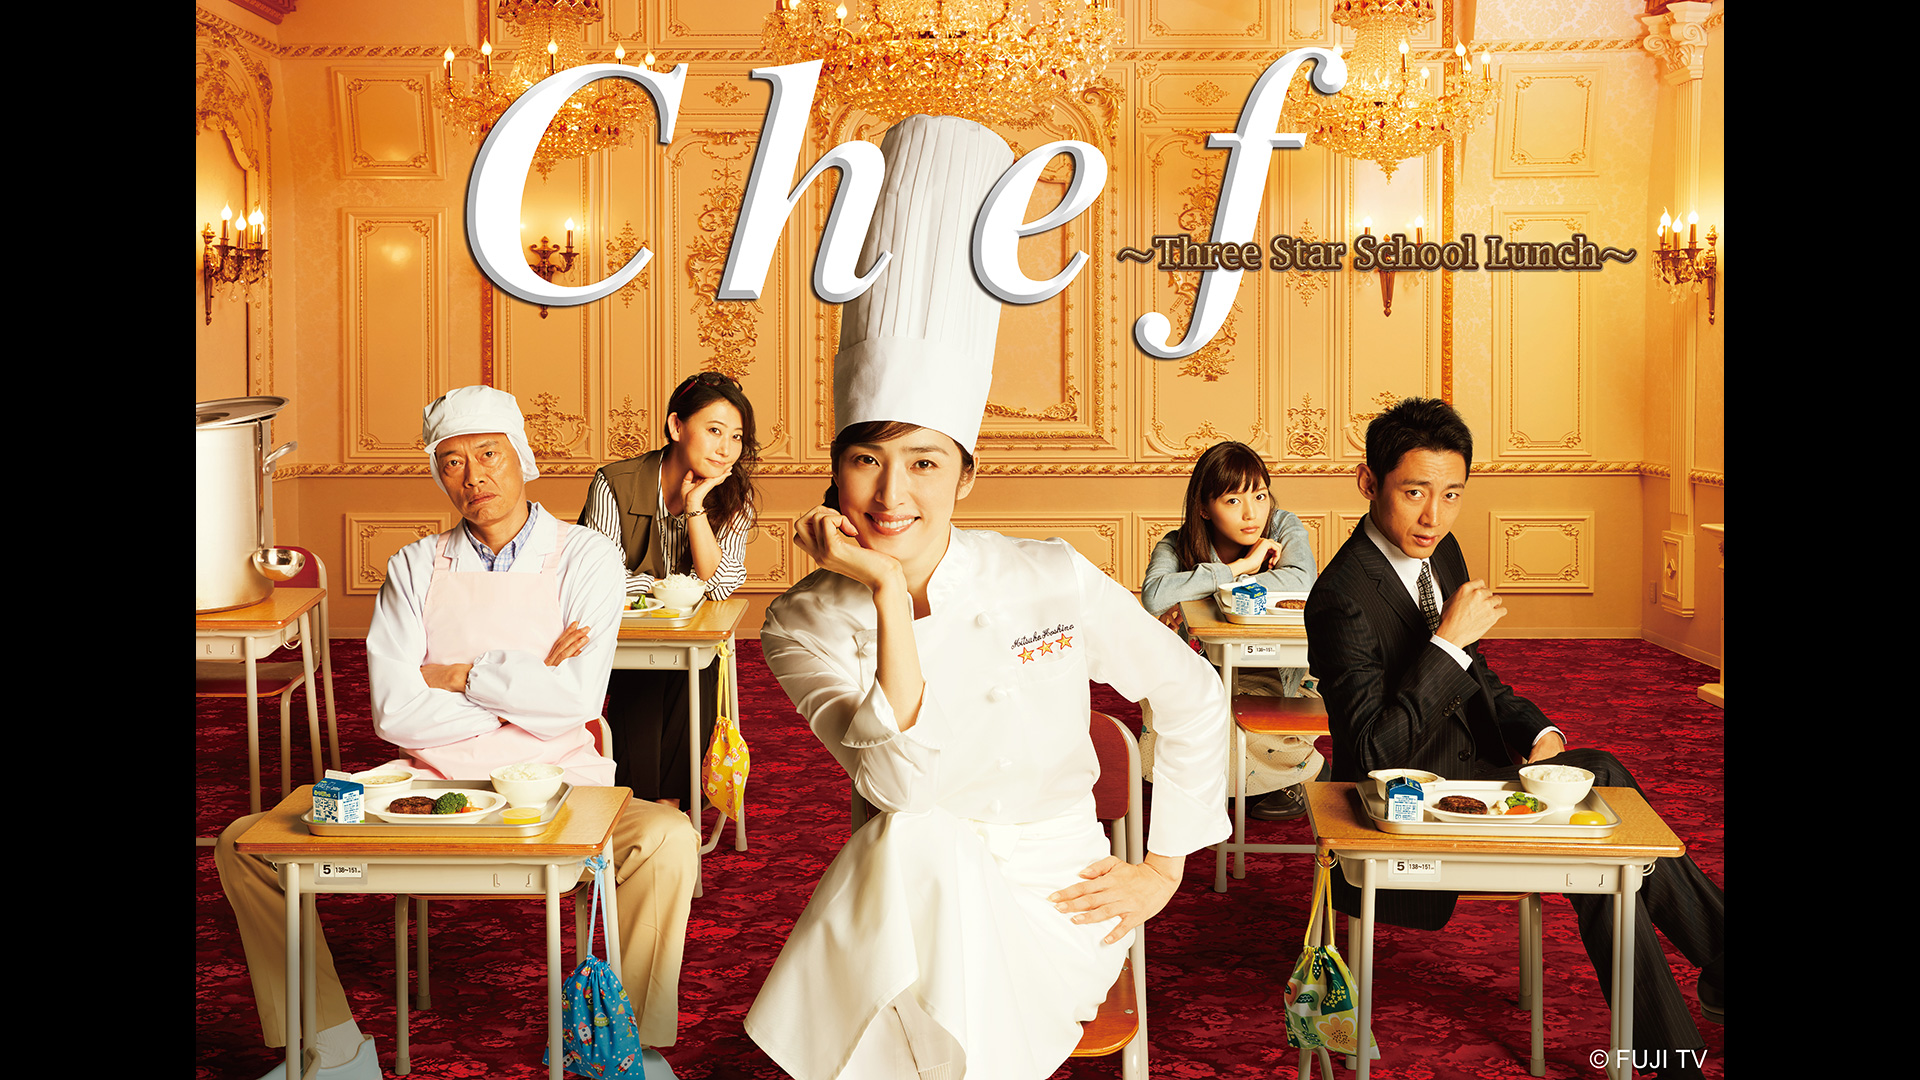 CHEF -Three Star School Lunch-